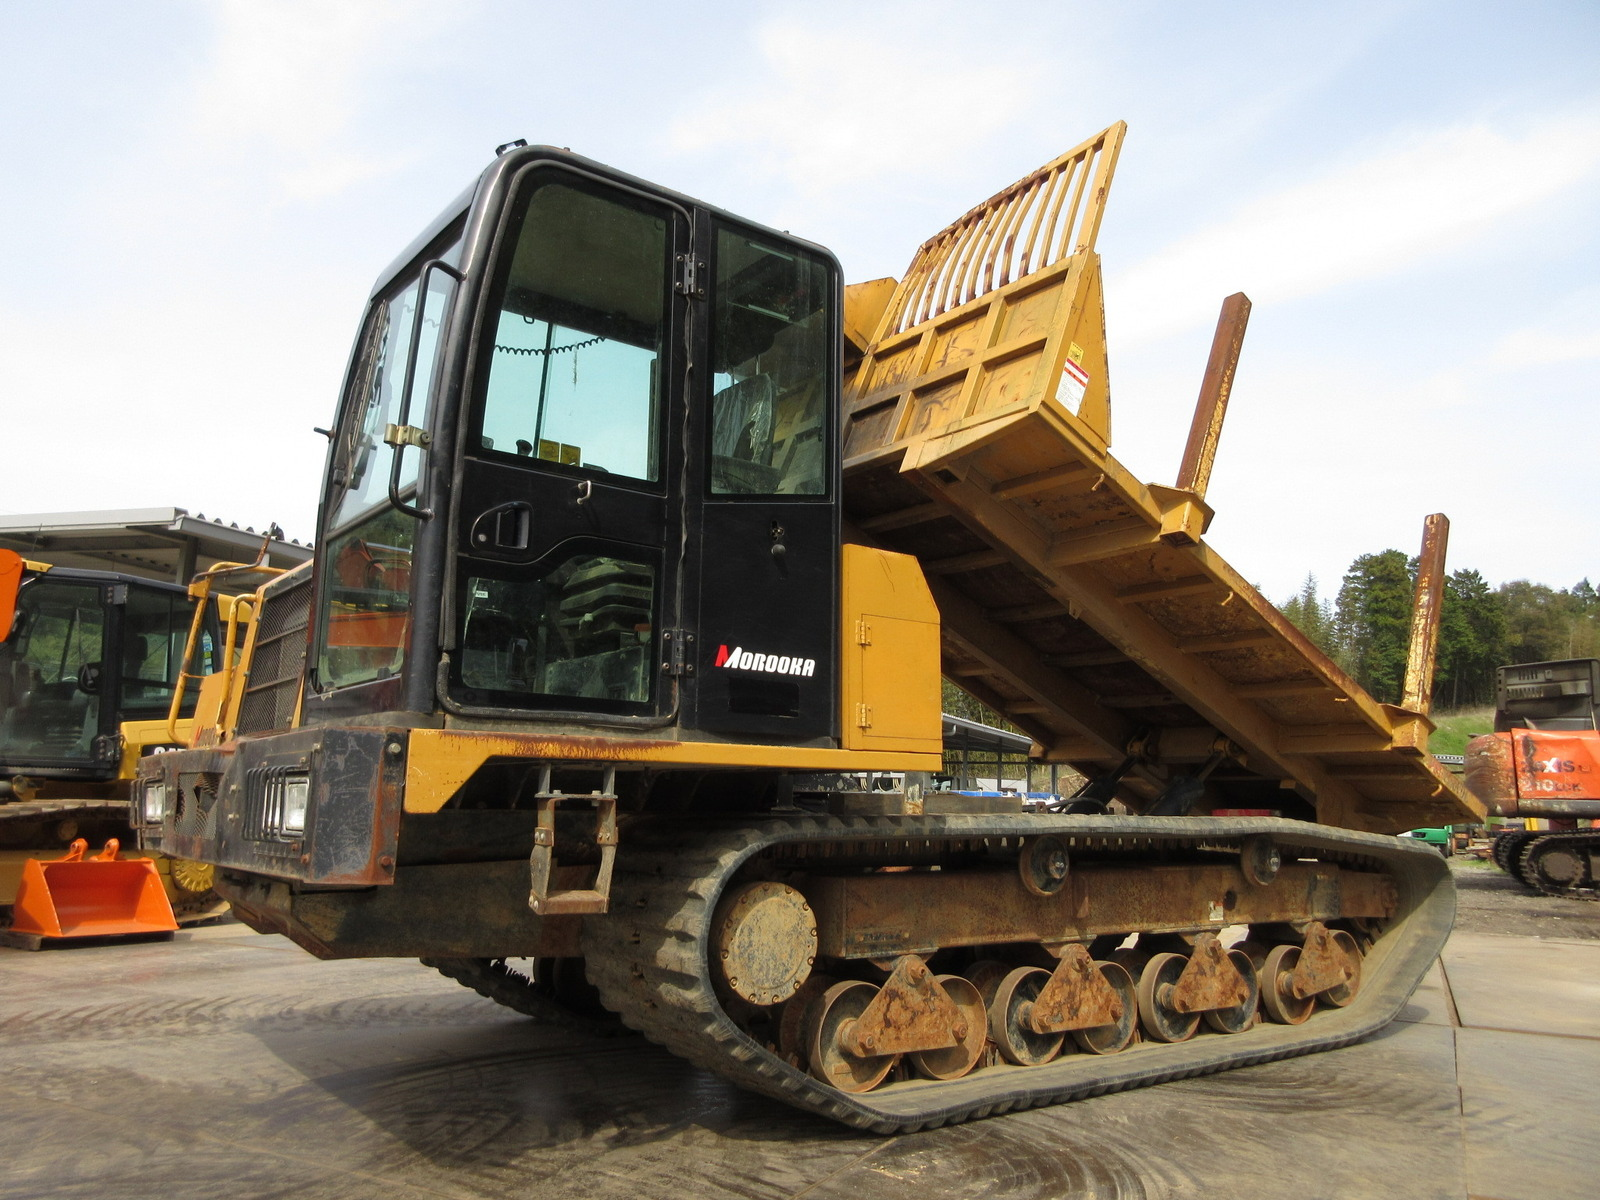 Used Construction Machine used  Forestry excavators Forwarder MST-1500VDL Photos